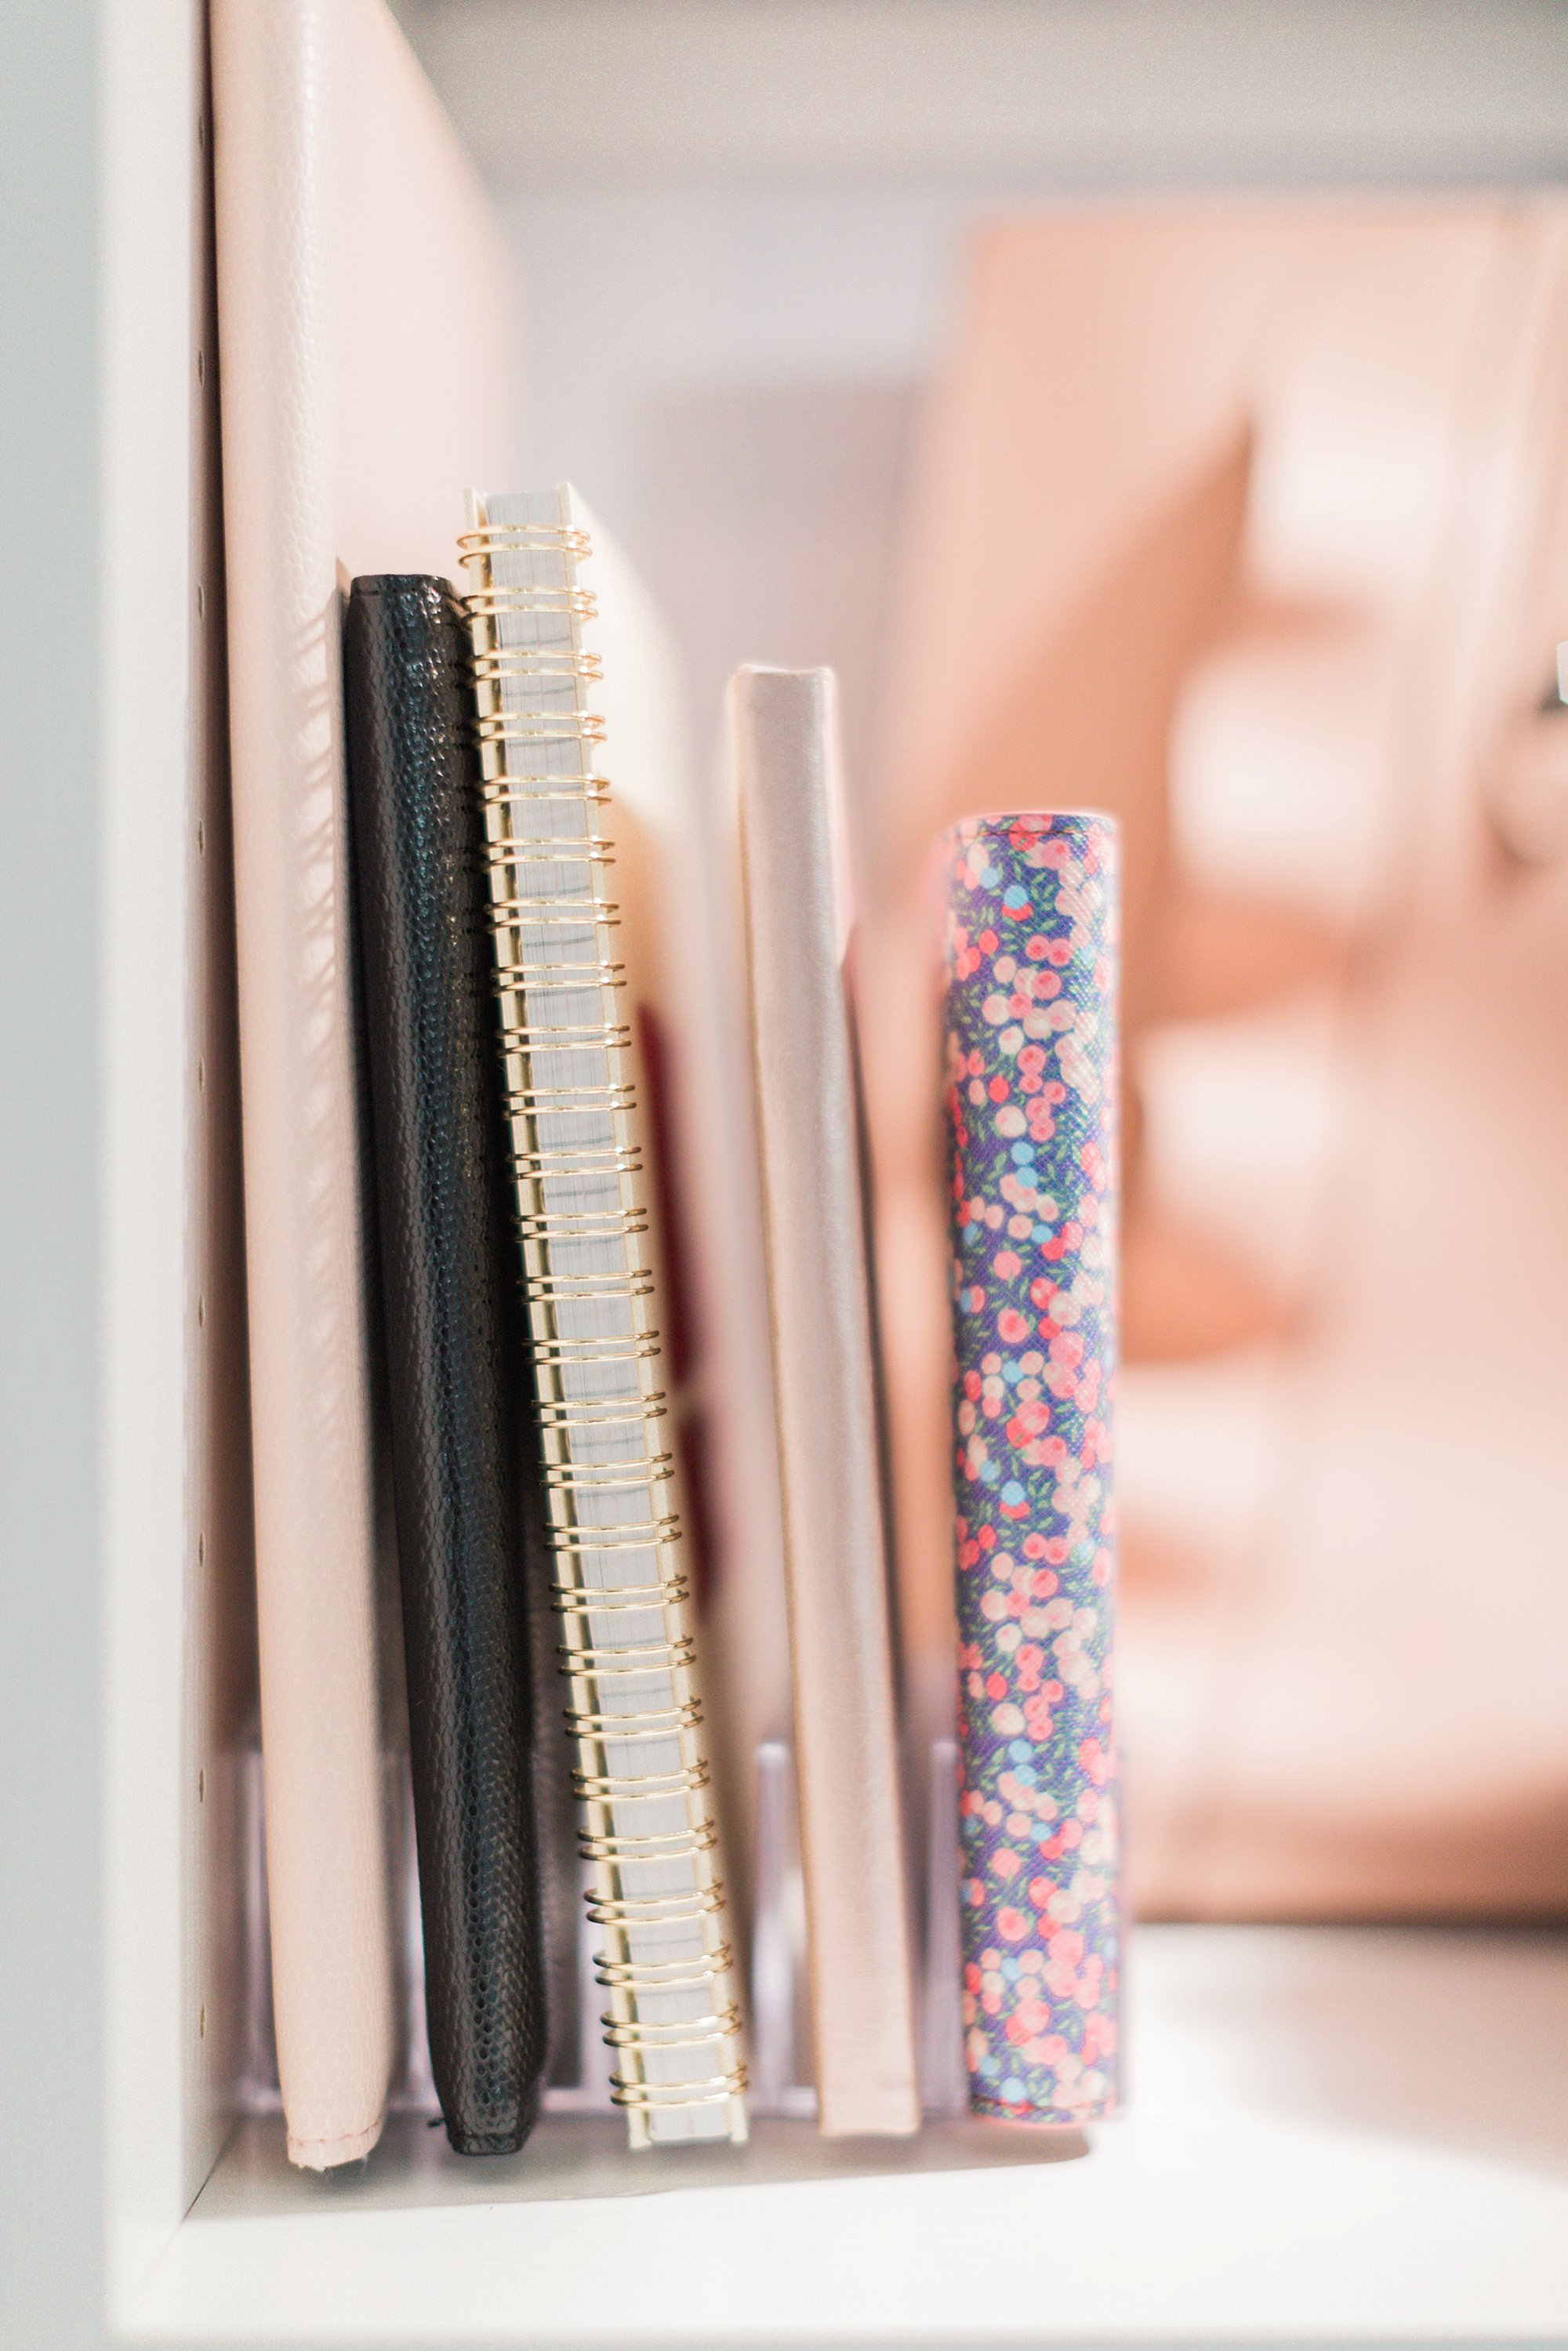 notebooks on hand in office closet: final reveal of office closet reveal belonging to photographer blogger Diana Elizabeth in phoenix arizona. created by California closets and with removable buffalo check wallpaper #office #closet #wallpaper #organization #lensorganization #lensdrawer